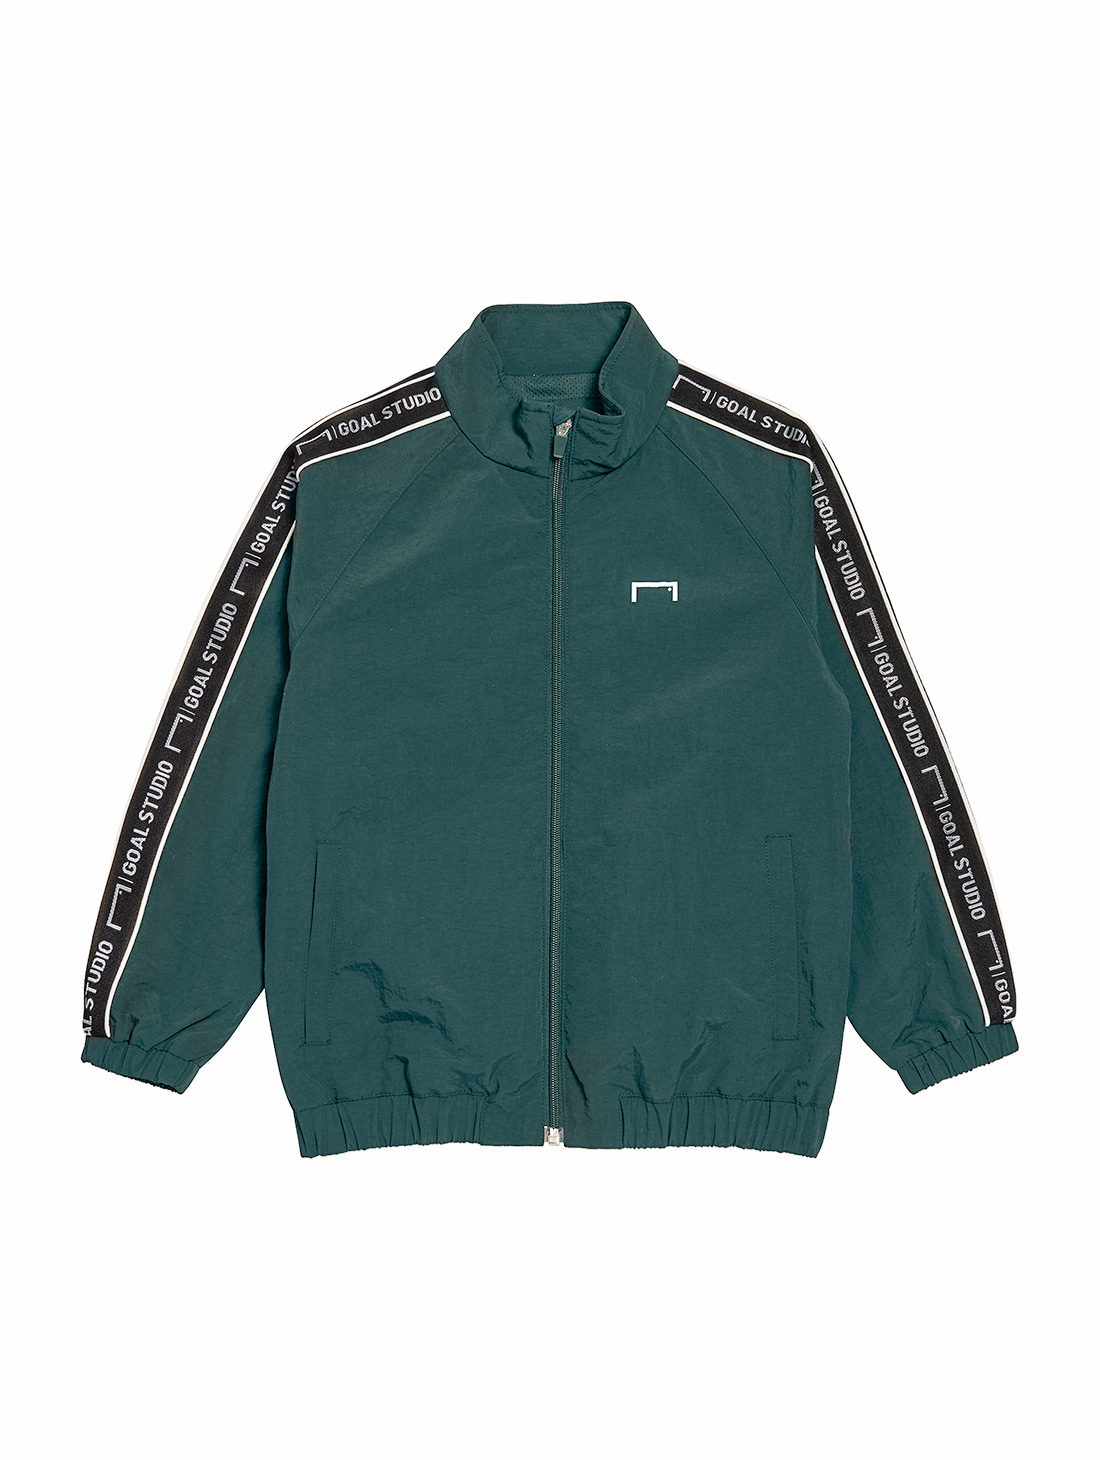 (KIDS) SMALL LOGO TRACK JACKET - DARK GREEN